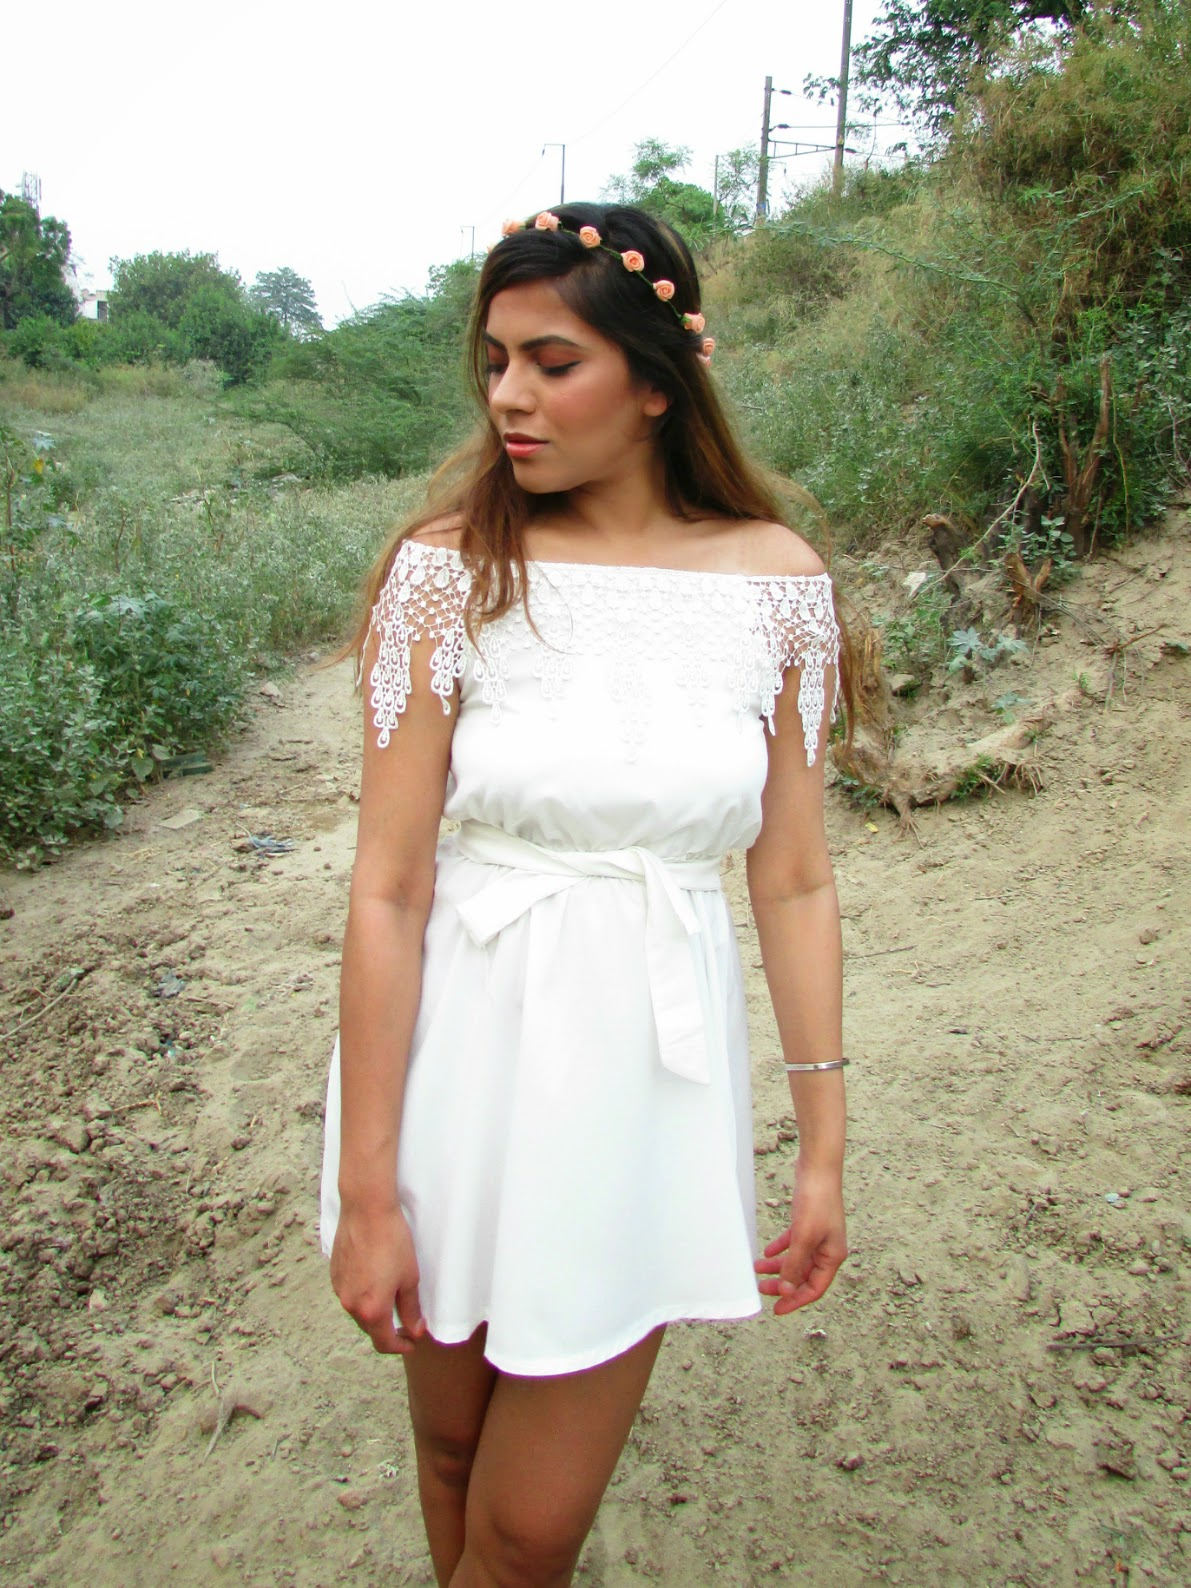 summer dress, white summer dress, off shoulder dress, floral crown, how to style off shoulder dress, fashion, ZNU, indian fashion blog, flat shoulder dress, white lace dress, boho style outfit, summer goddess dress,  strip dress, cheap strip dress, how to style strip dress, strip dress for summers, blue white strip sleeveless dress, peter pan collar strip dress, fashion, indian fashion blog, cheap dresses online, summer trends 2015, spring dress 2015, beauty , fashion,beauty and fashion,beauty blog, fashion blog , indian beauty blog,indian fashion blog, beauty and fashion blog, indian beauty and fashion blog, indian bloggers, indian beauty bloggers, indian fashion bloggers,indian bloggers online, top 10 indian bloggers, top indian bloggers,top 10 fashion bloggers, indian bloggers on blogspot,home remedies, how to